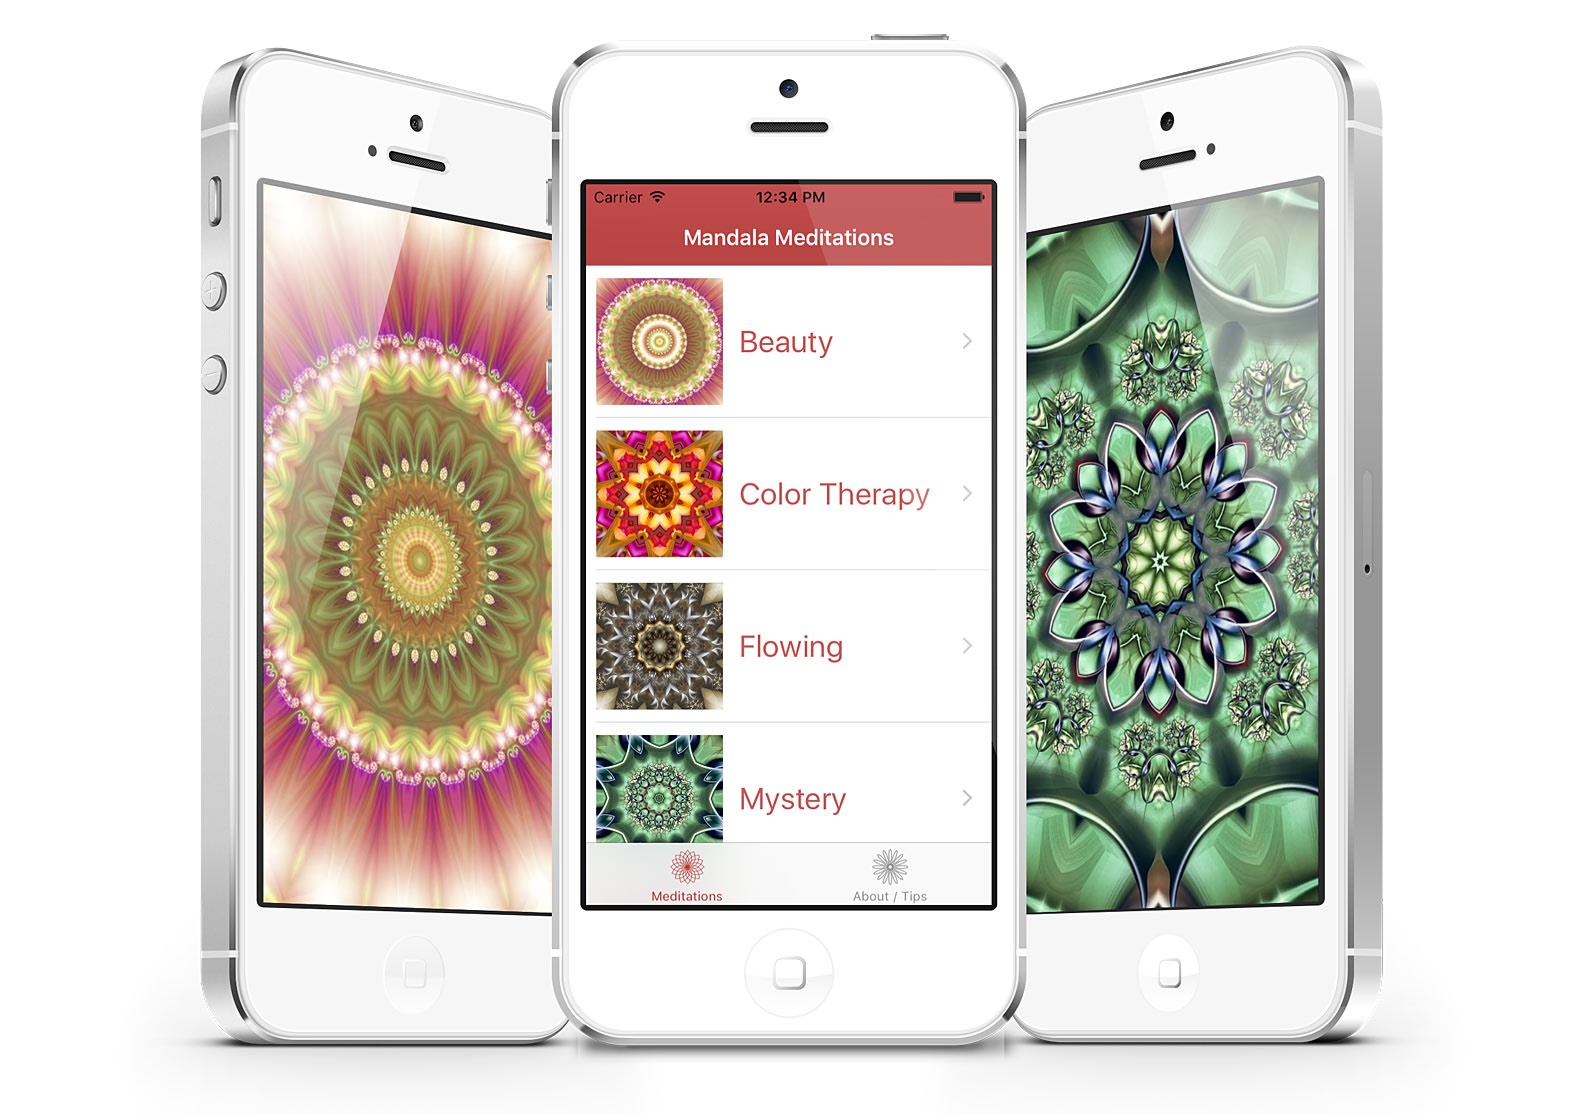 Mandala Meditations Relaxation App for iOS